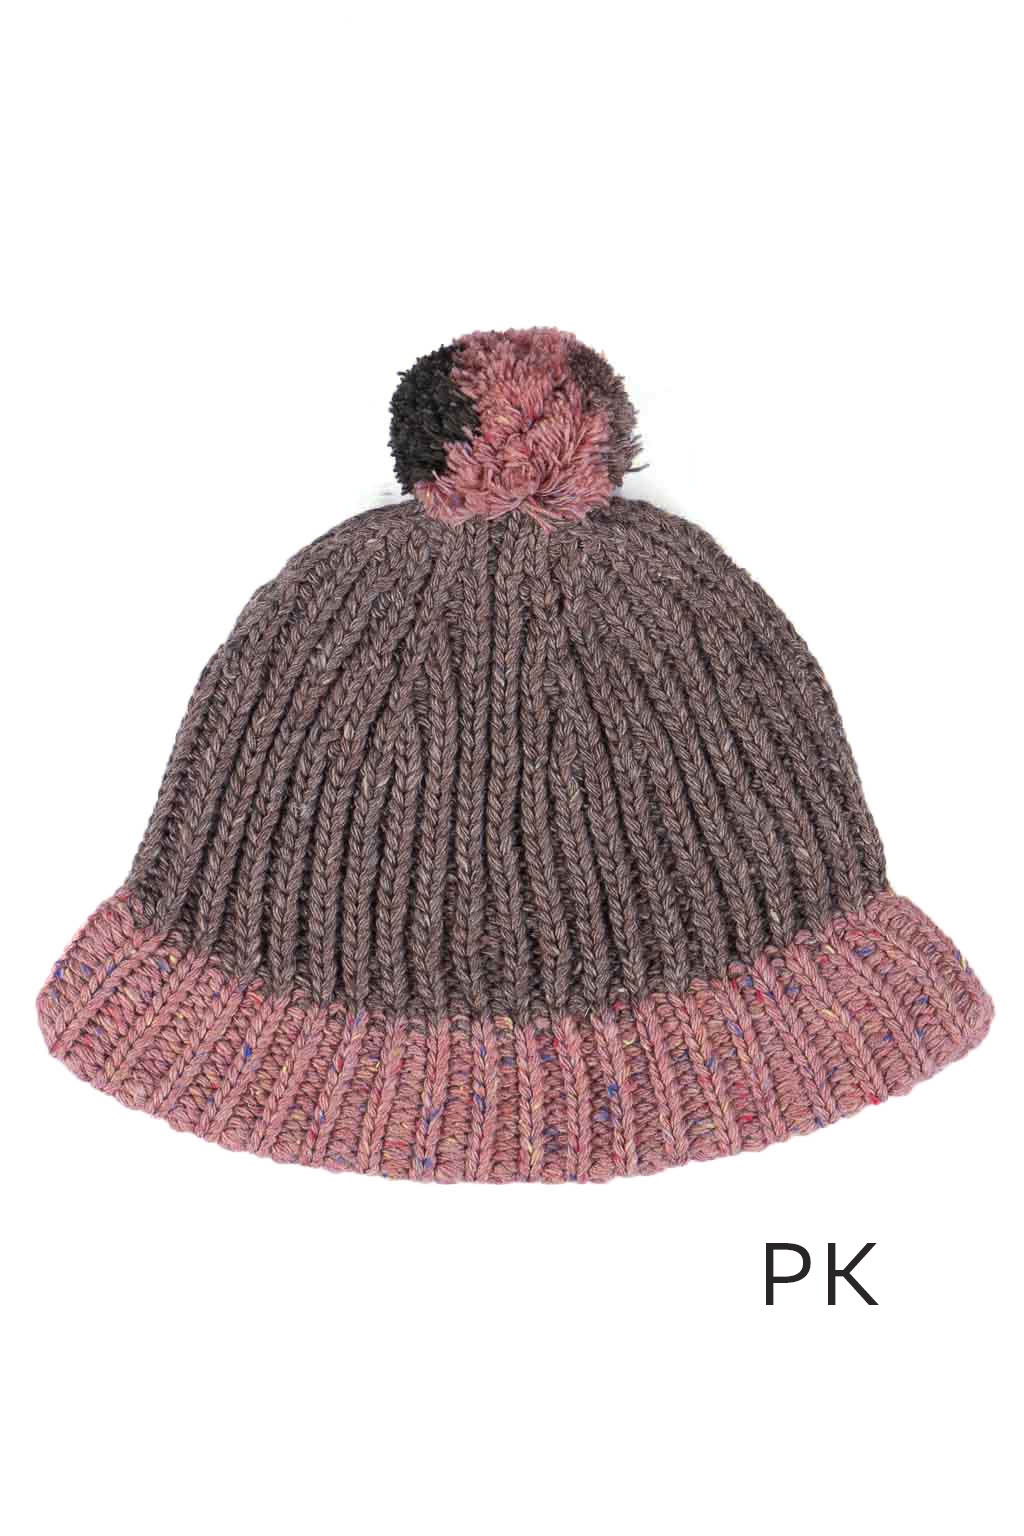 Kapital 3G Wool 2TONES Ski Cap - 3 Colour Choices